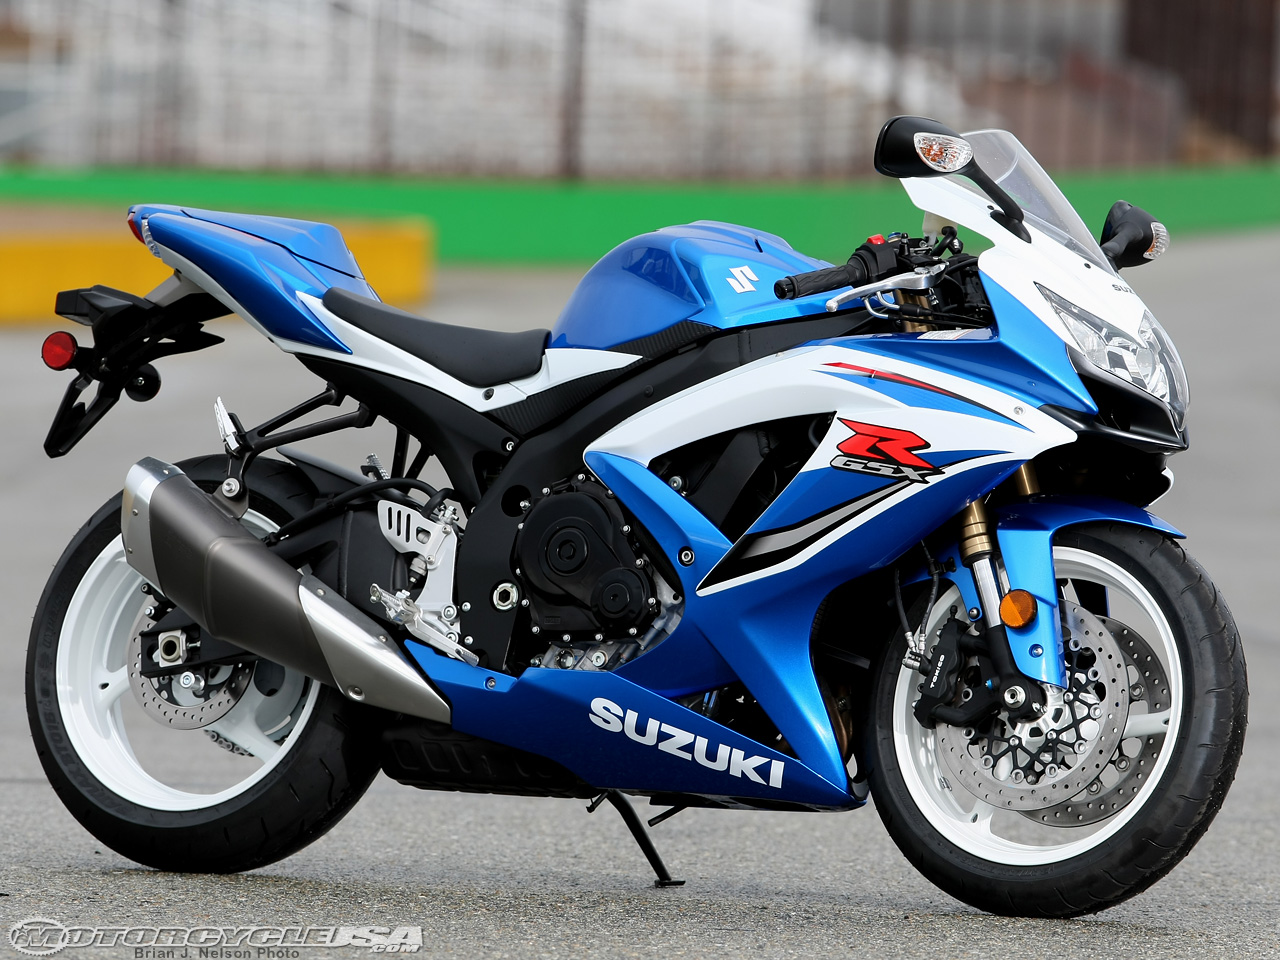 2009 suzuki gsx r 750 pics specs and information. Black Bedroom Furniture Sets. Home Design Ideas